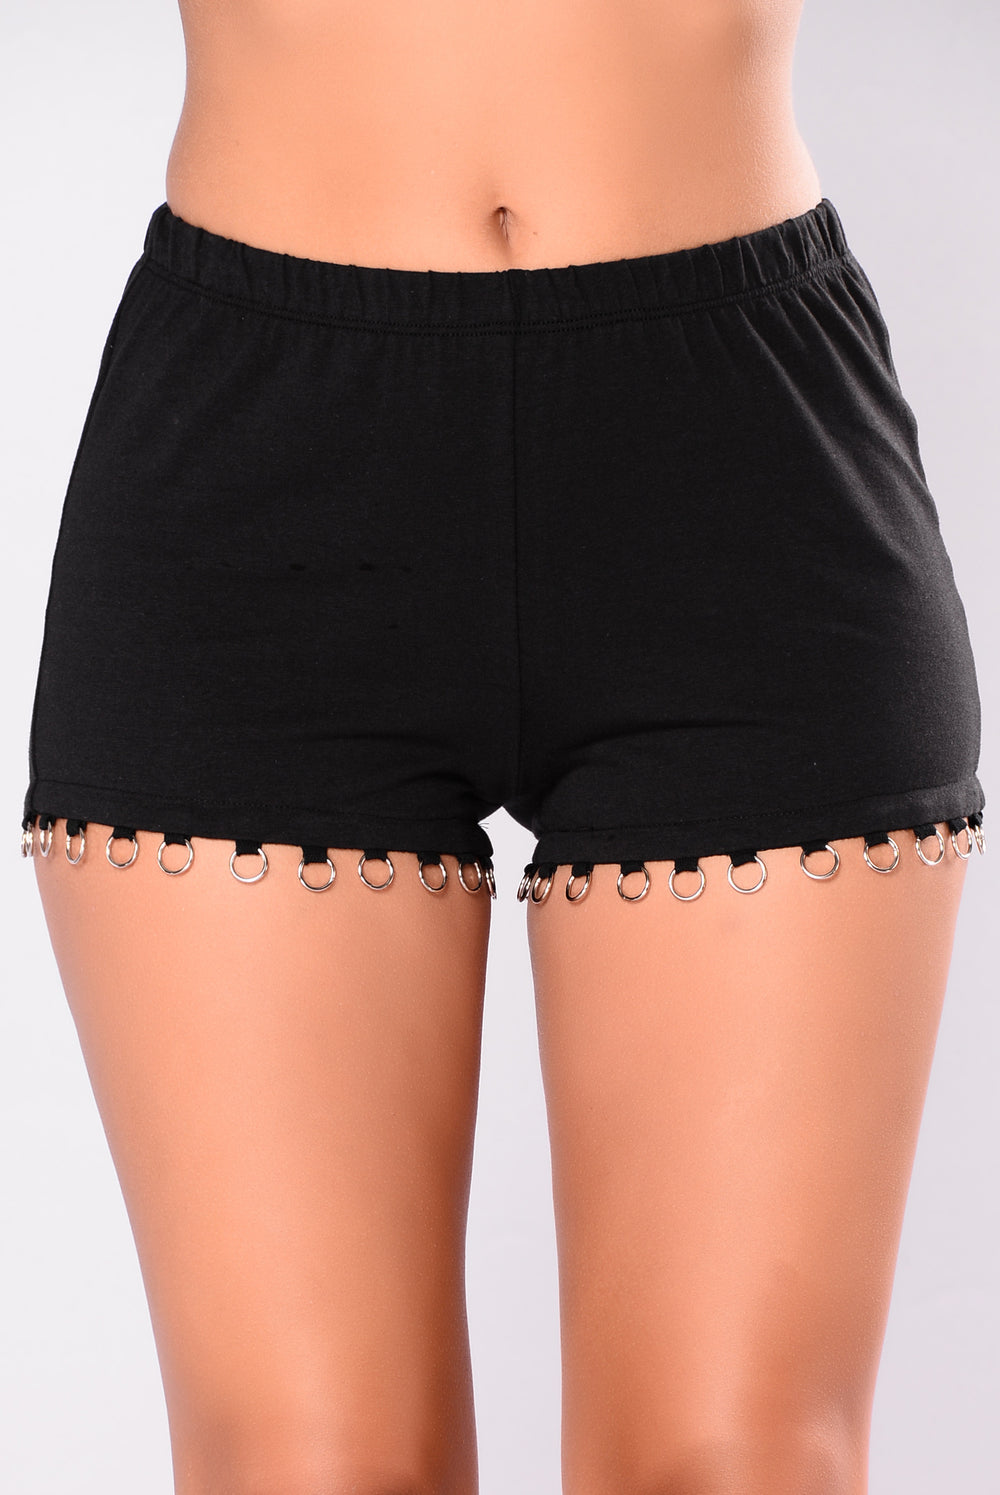 All Of Us Shorts - Black